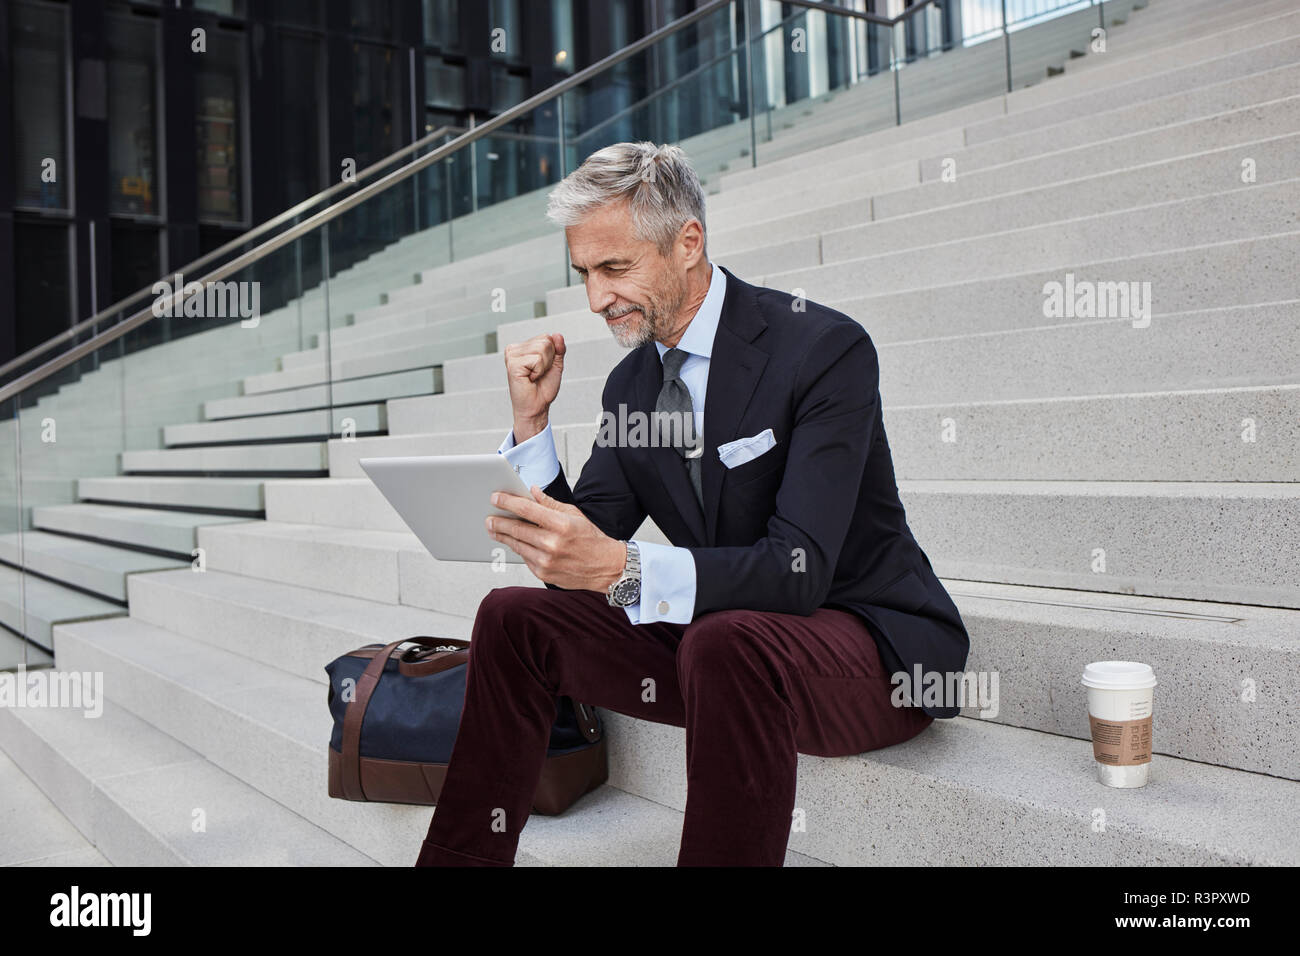 Fashionable businessman with travelling bag nd coffee to go sitting on stairs using tablet - Stock Image